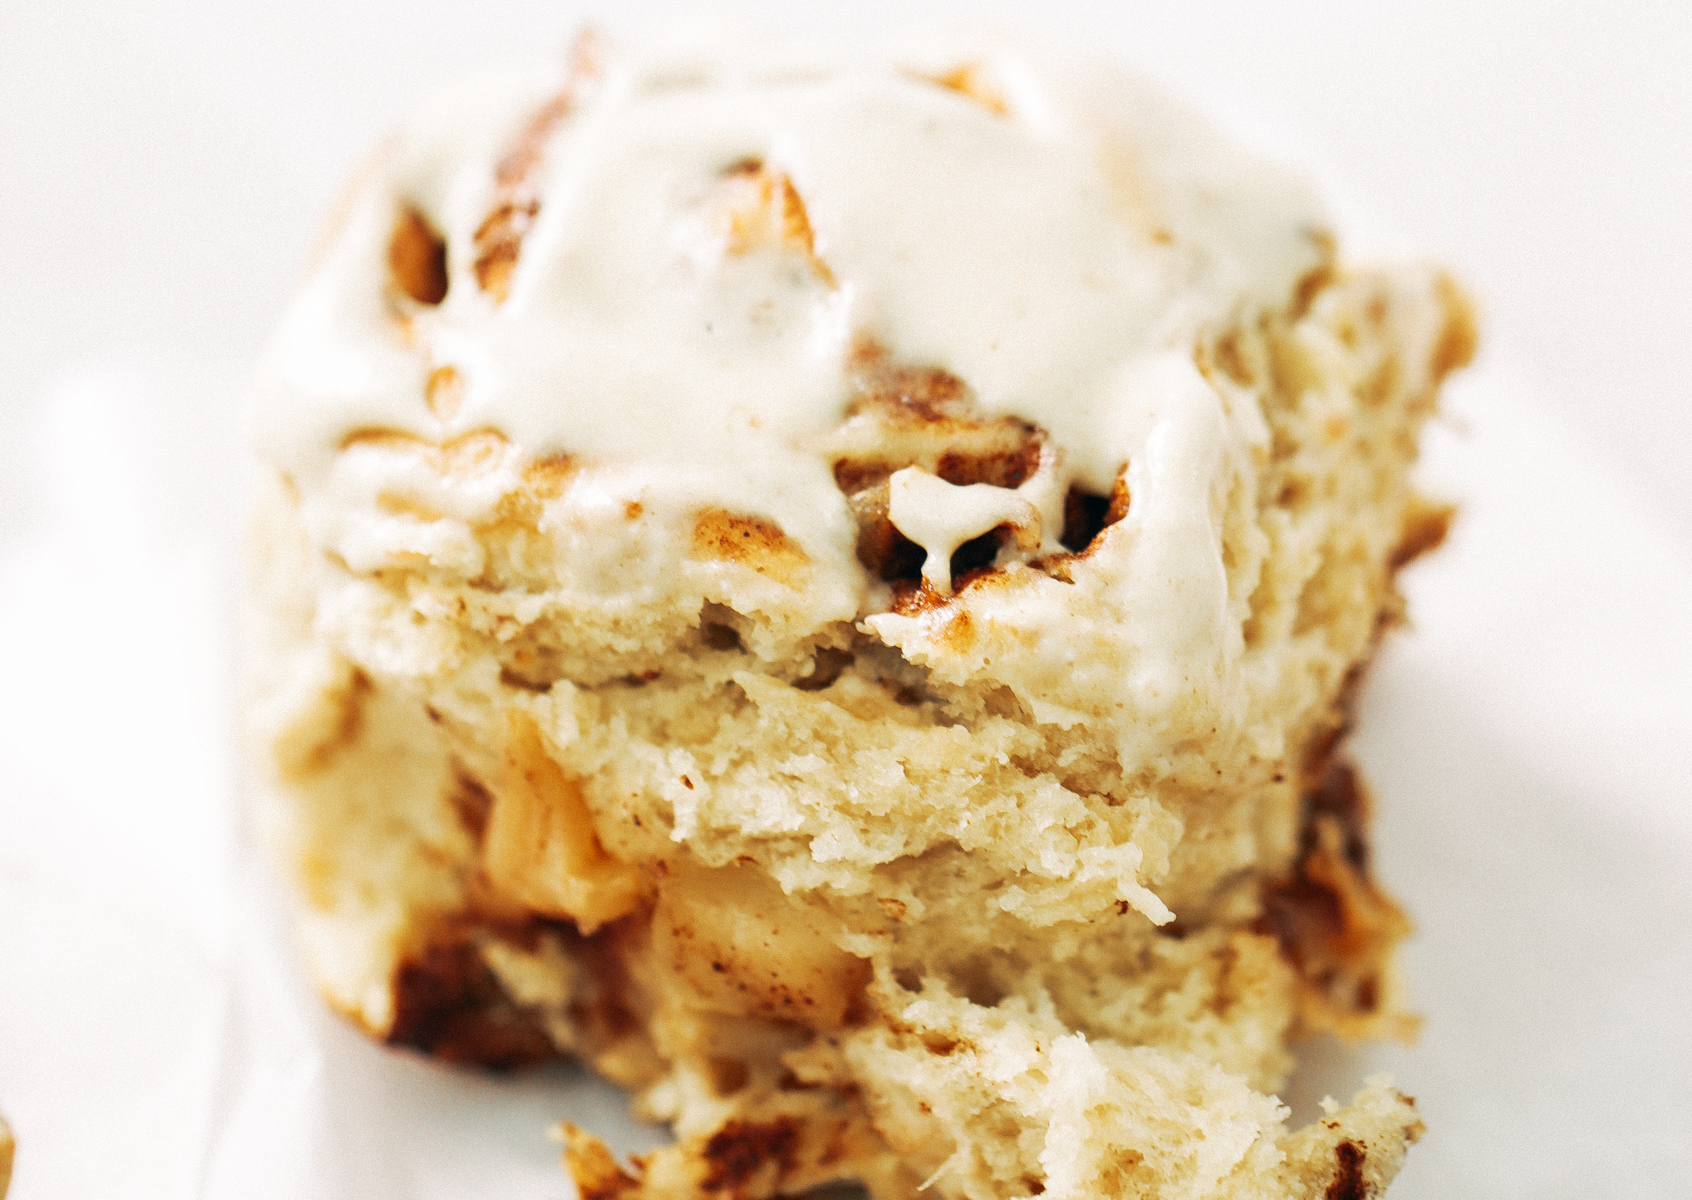 Fluffy Vegan Cinnamon Rolls made with coconut oil, almond milk, and no refined sugar! These healthier cinnamon rolls are light, fluffy, gooey, and delicious. You can make these vegan with cashew cream cheese frosting- yum!